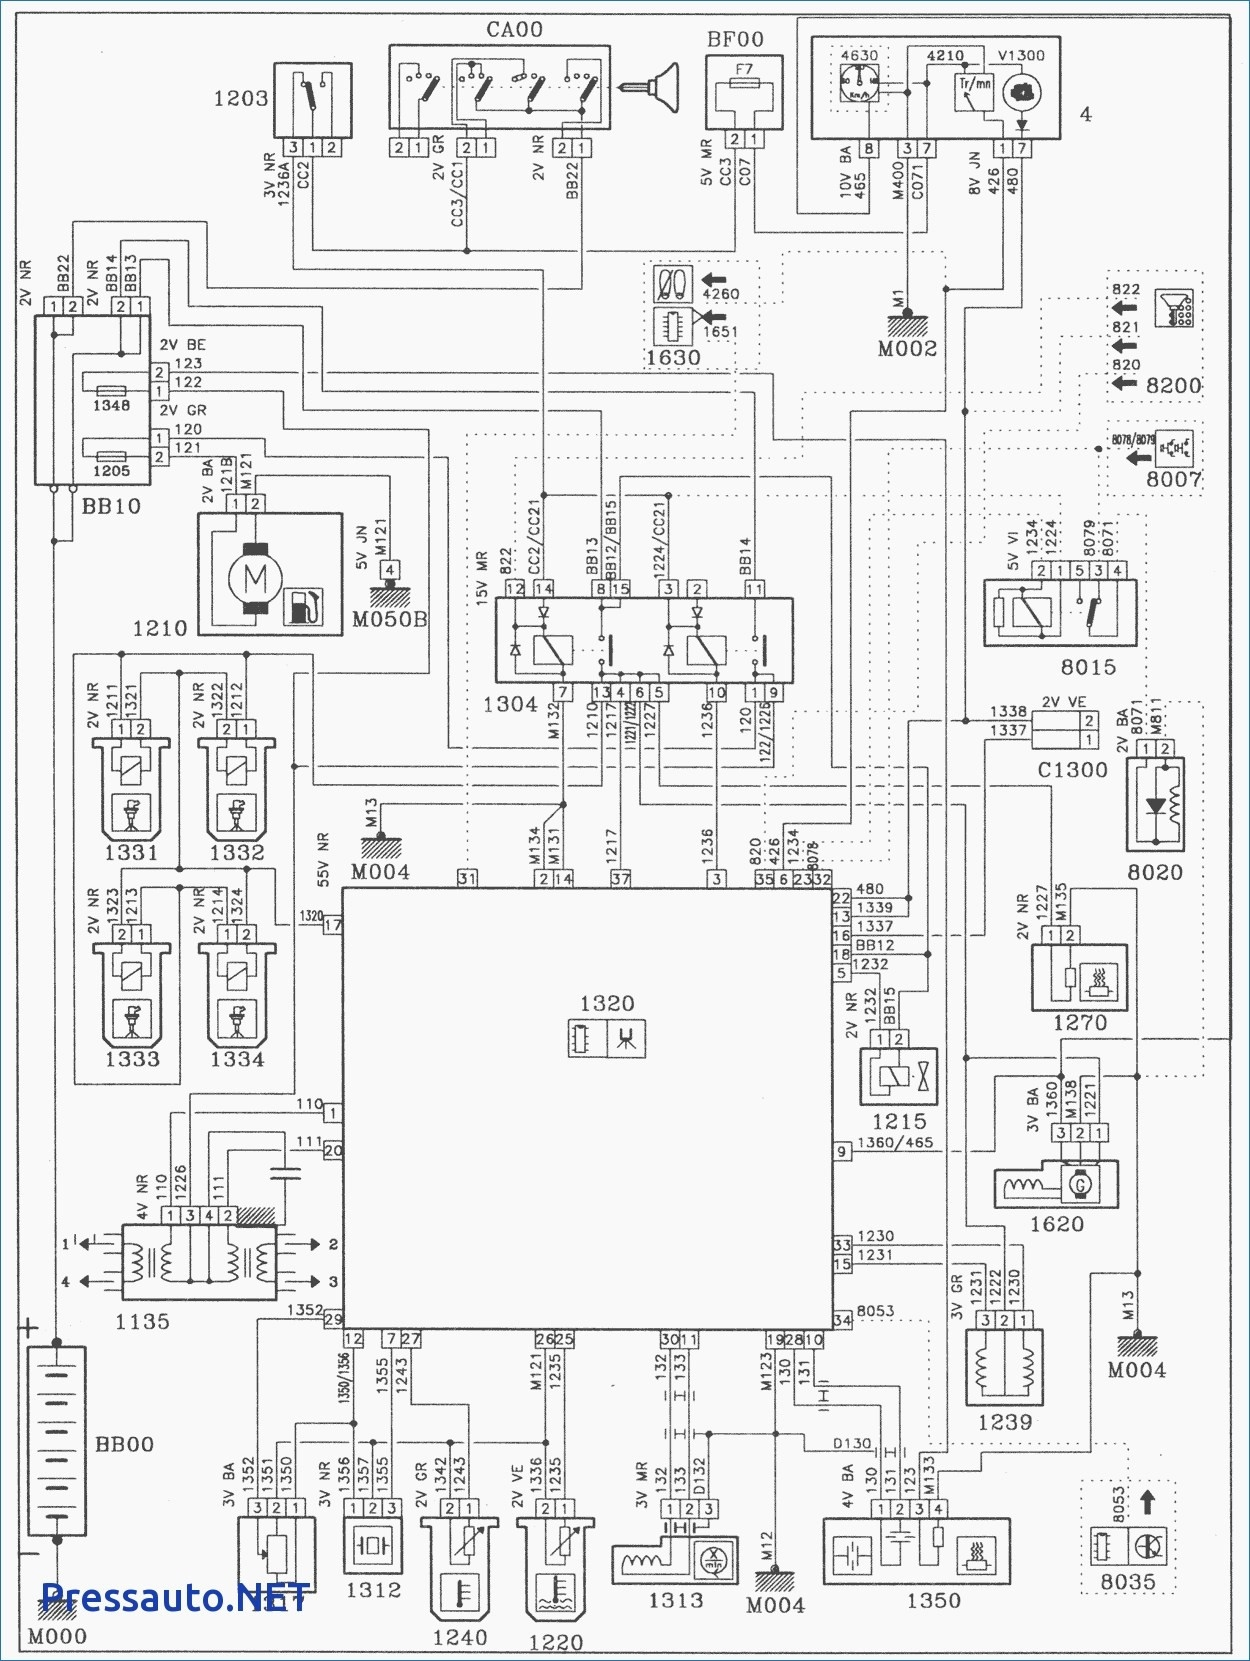 air pressor pressure switch diagram  engine  wiring diagram images